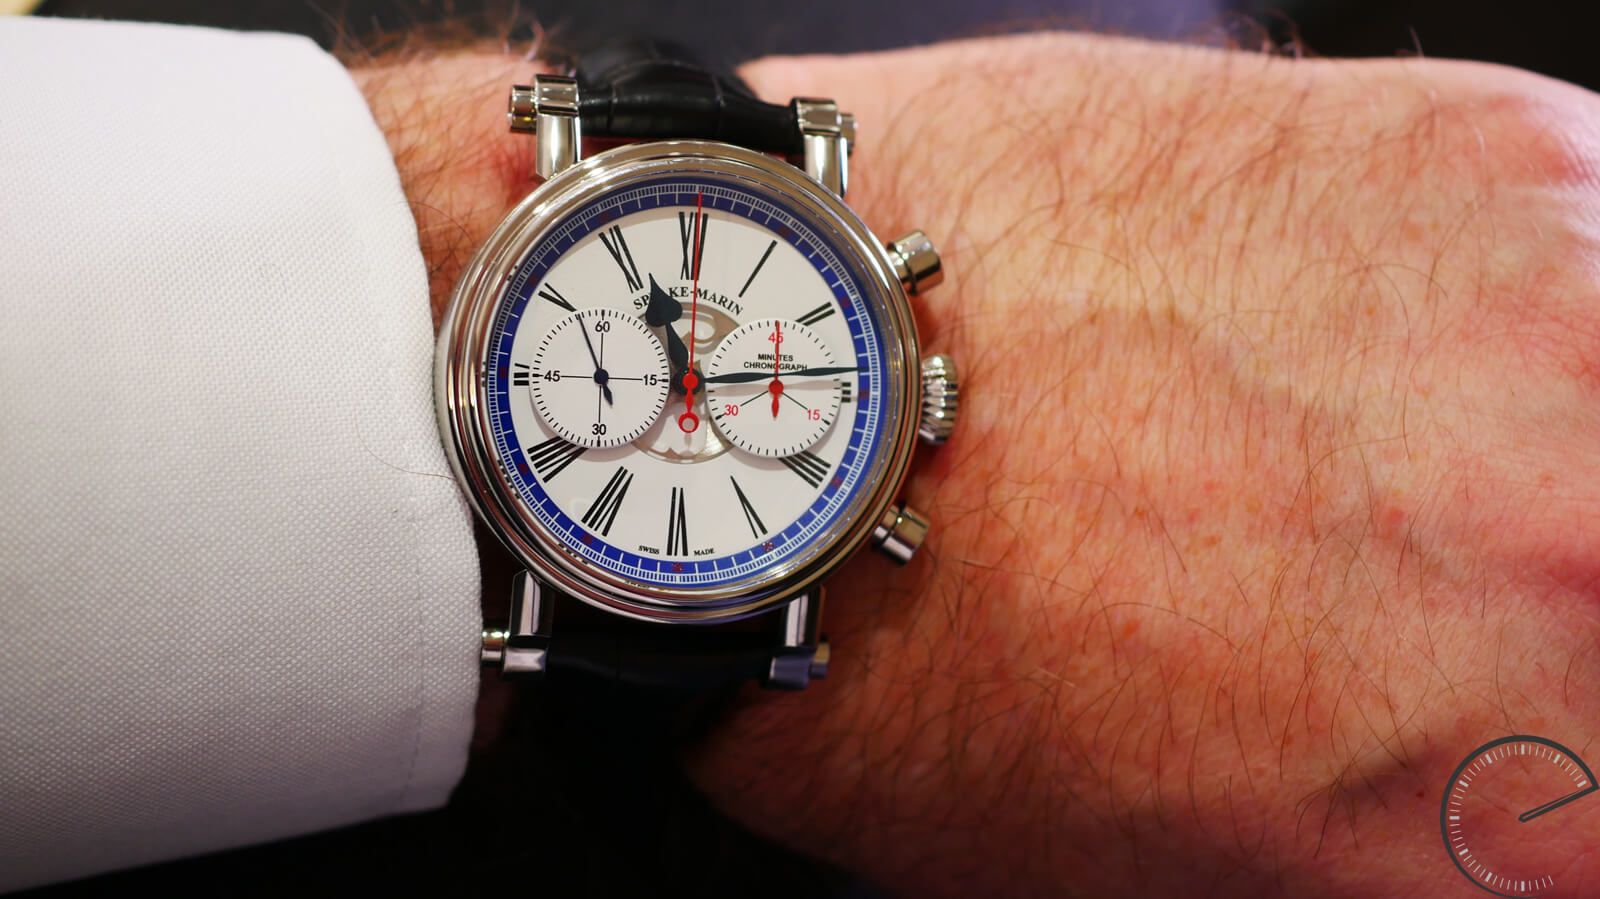 Speake-Marin London Chronograph featuring Valjoux 92 column-wheel chronograph